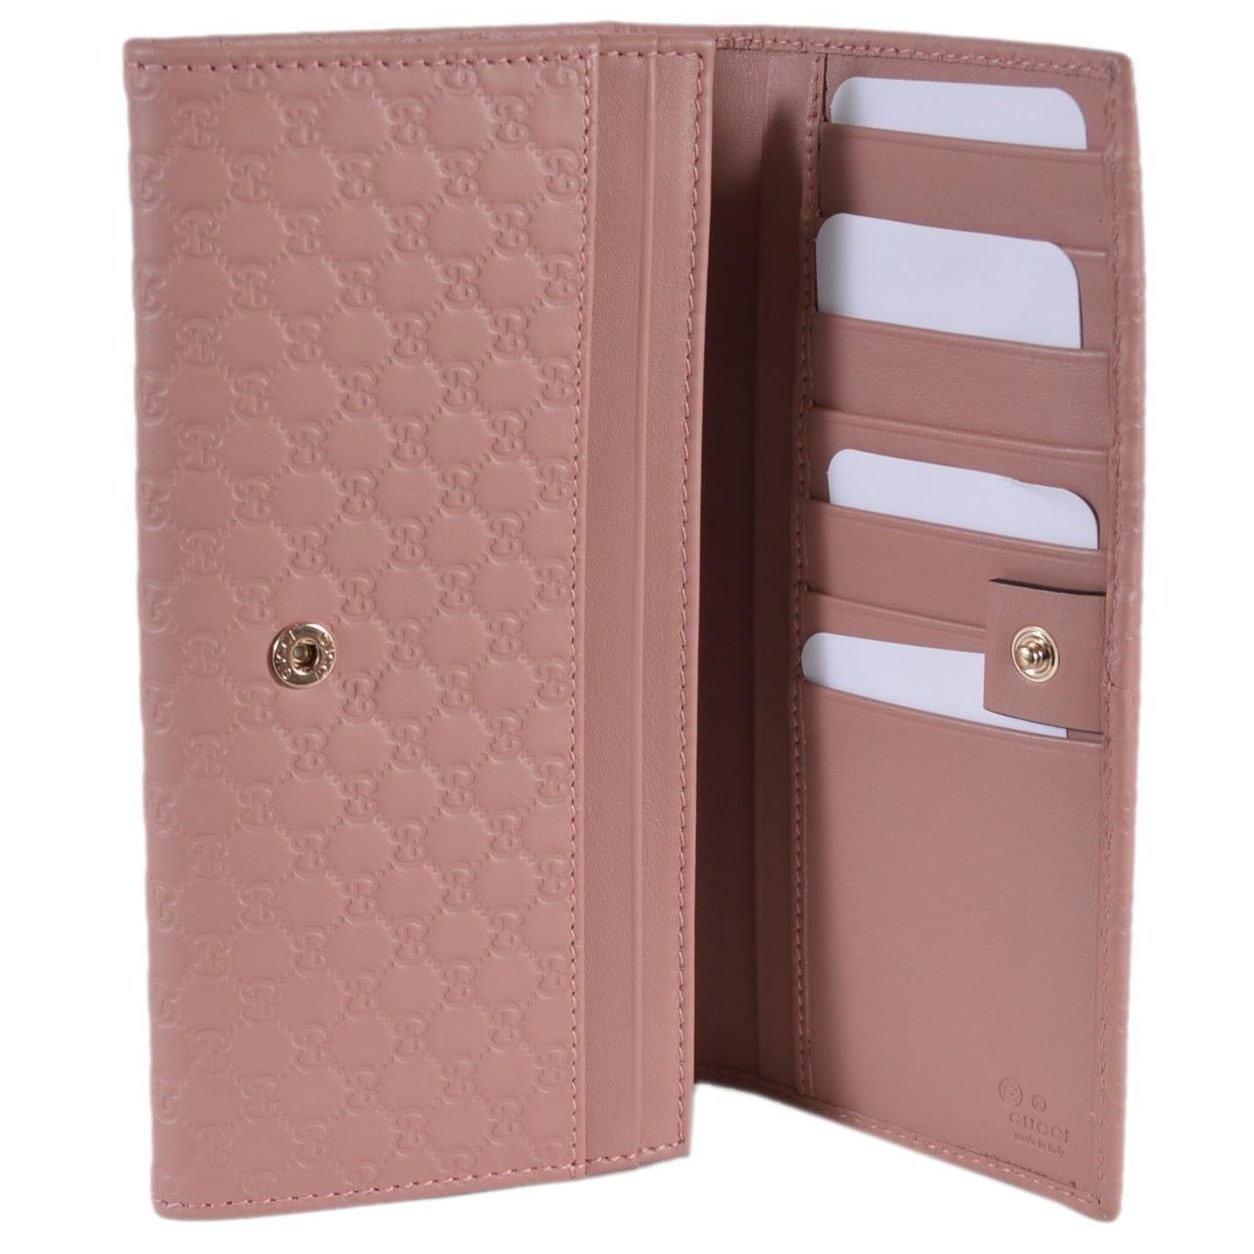 ebcdce083331 Shop Gucci Women's 449396 Soft Pink Leather Micro GG Continental Bifold  Wallet - 7.5